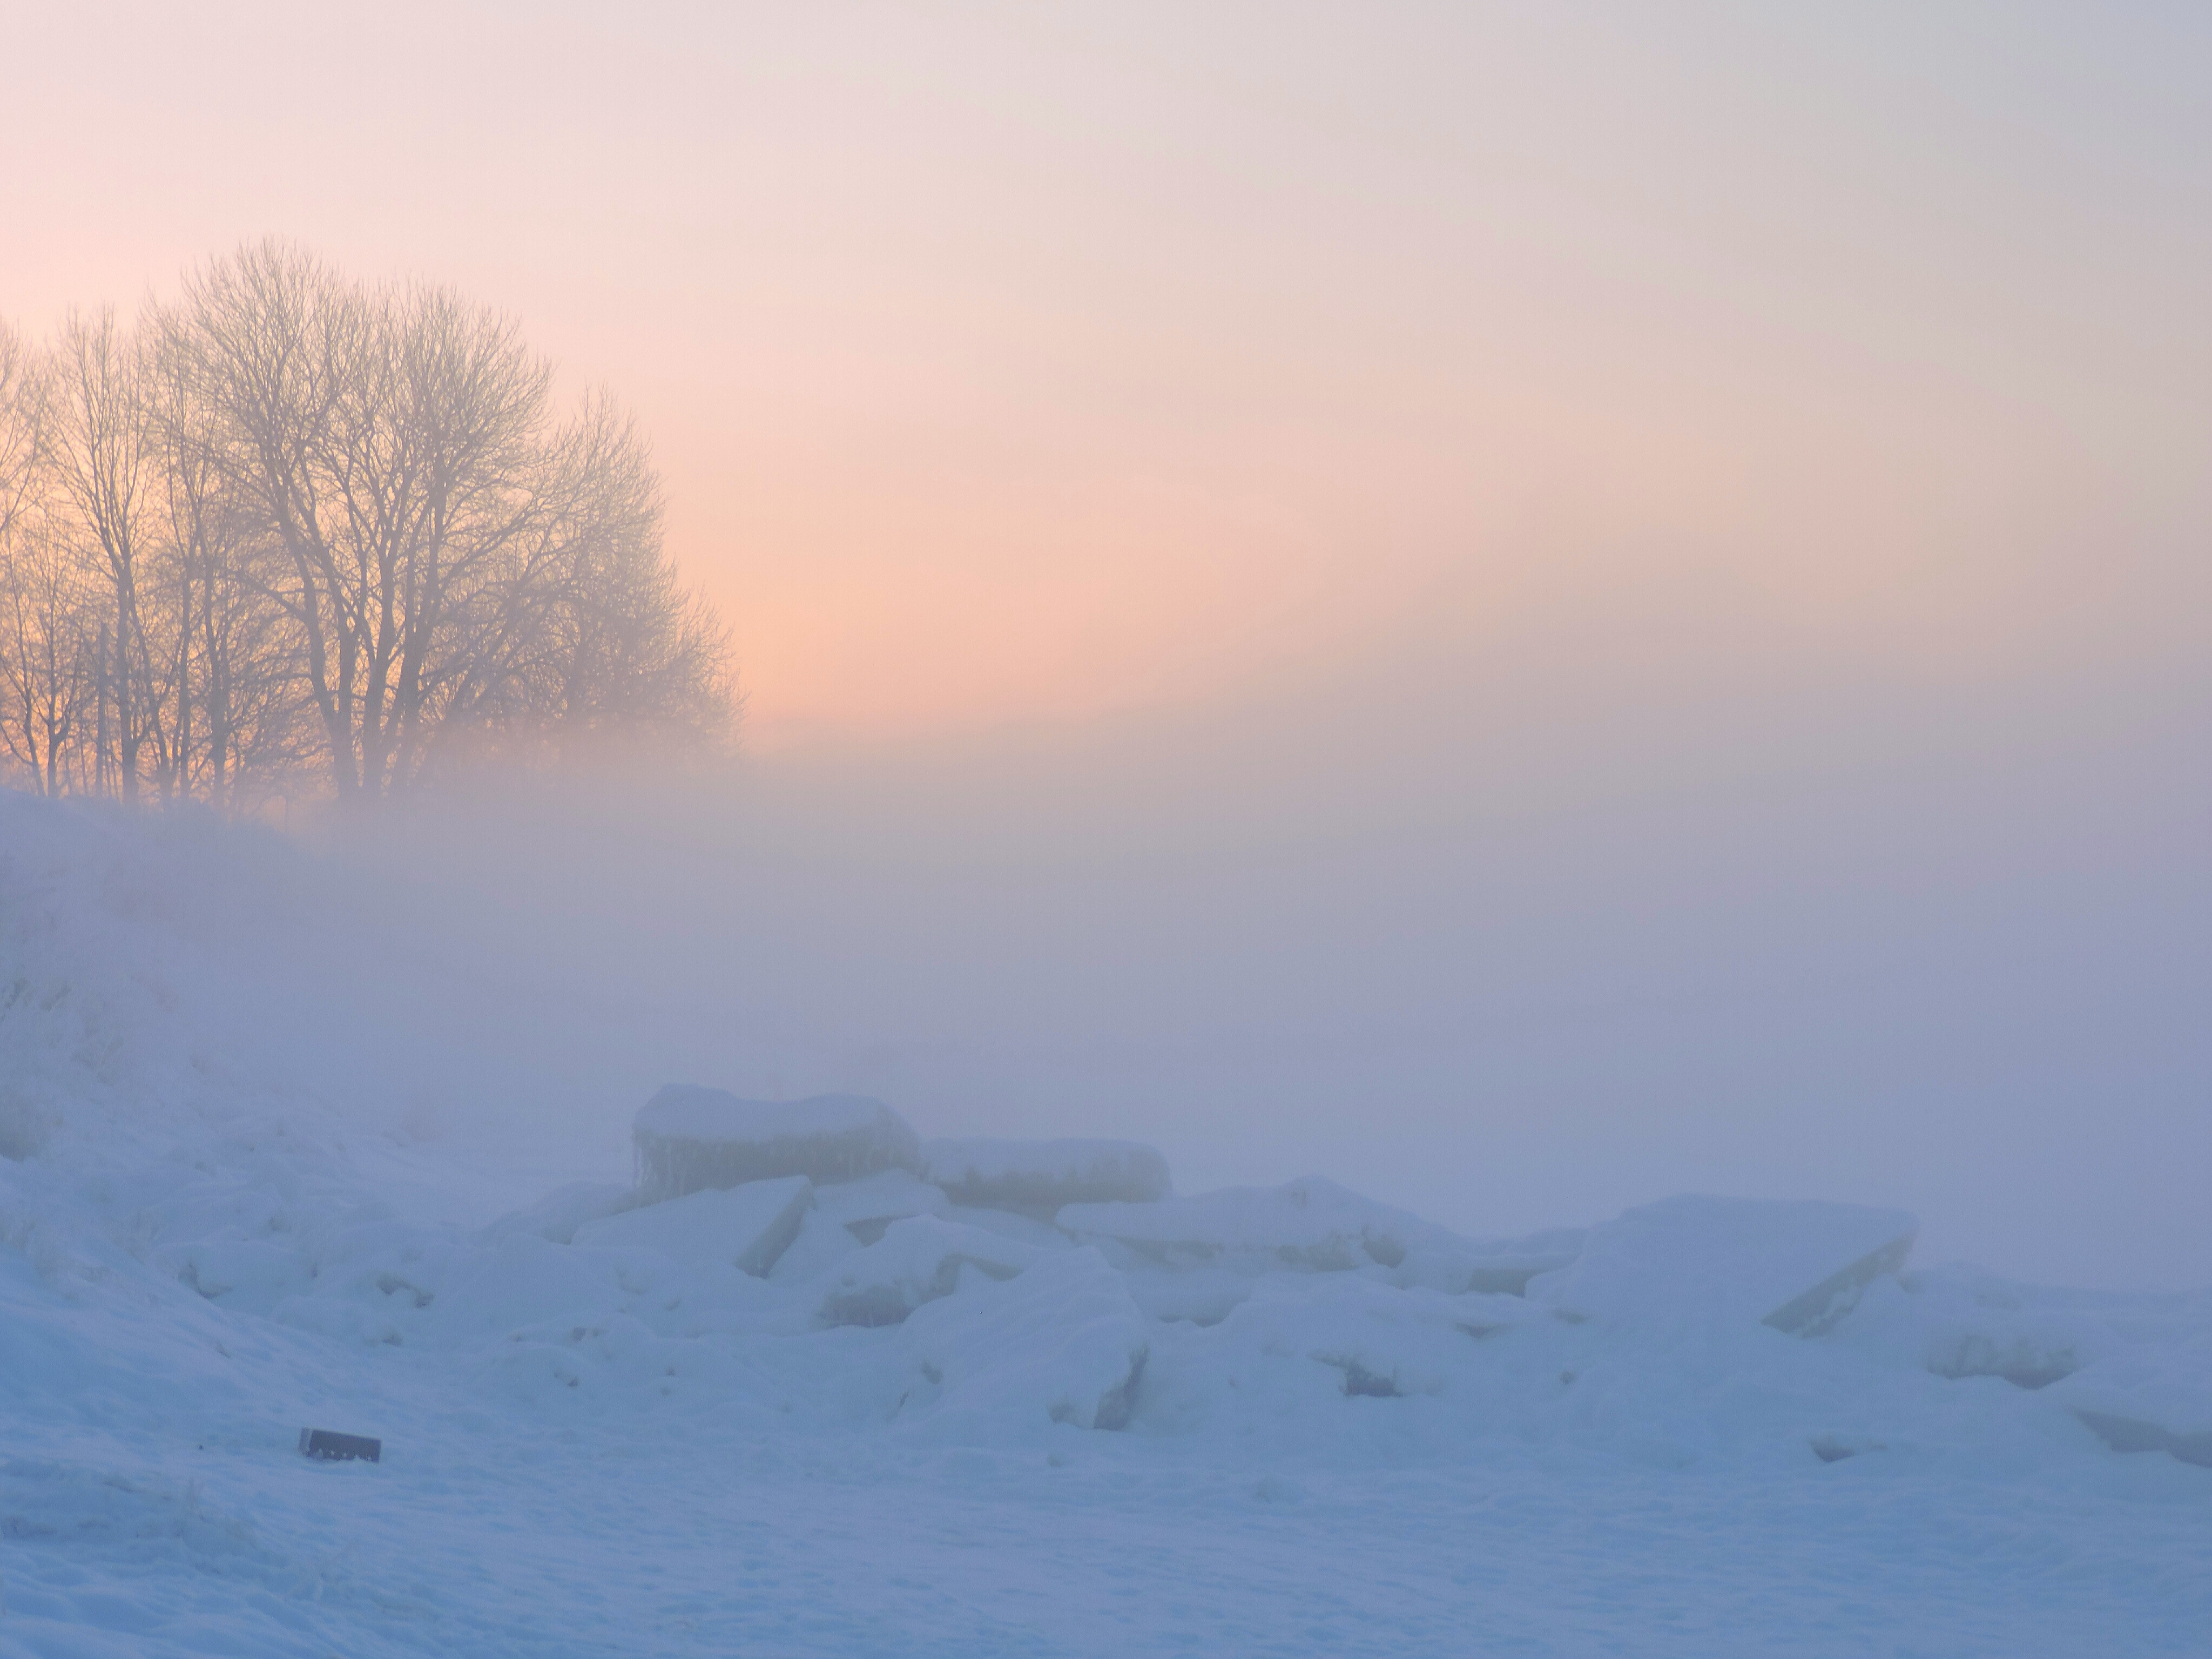 Floating In Twilight Winter Haze Like >> Https Www Smithsonianmag Com Photocontest Detail Natural World